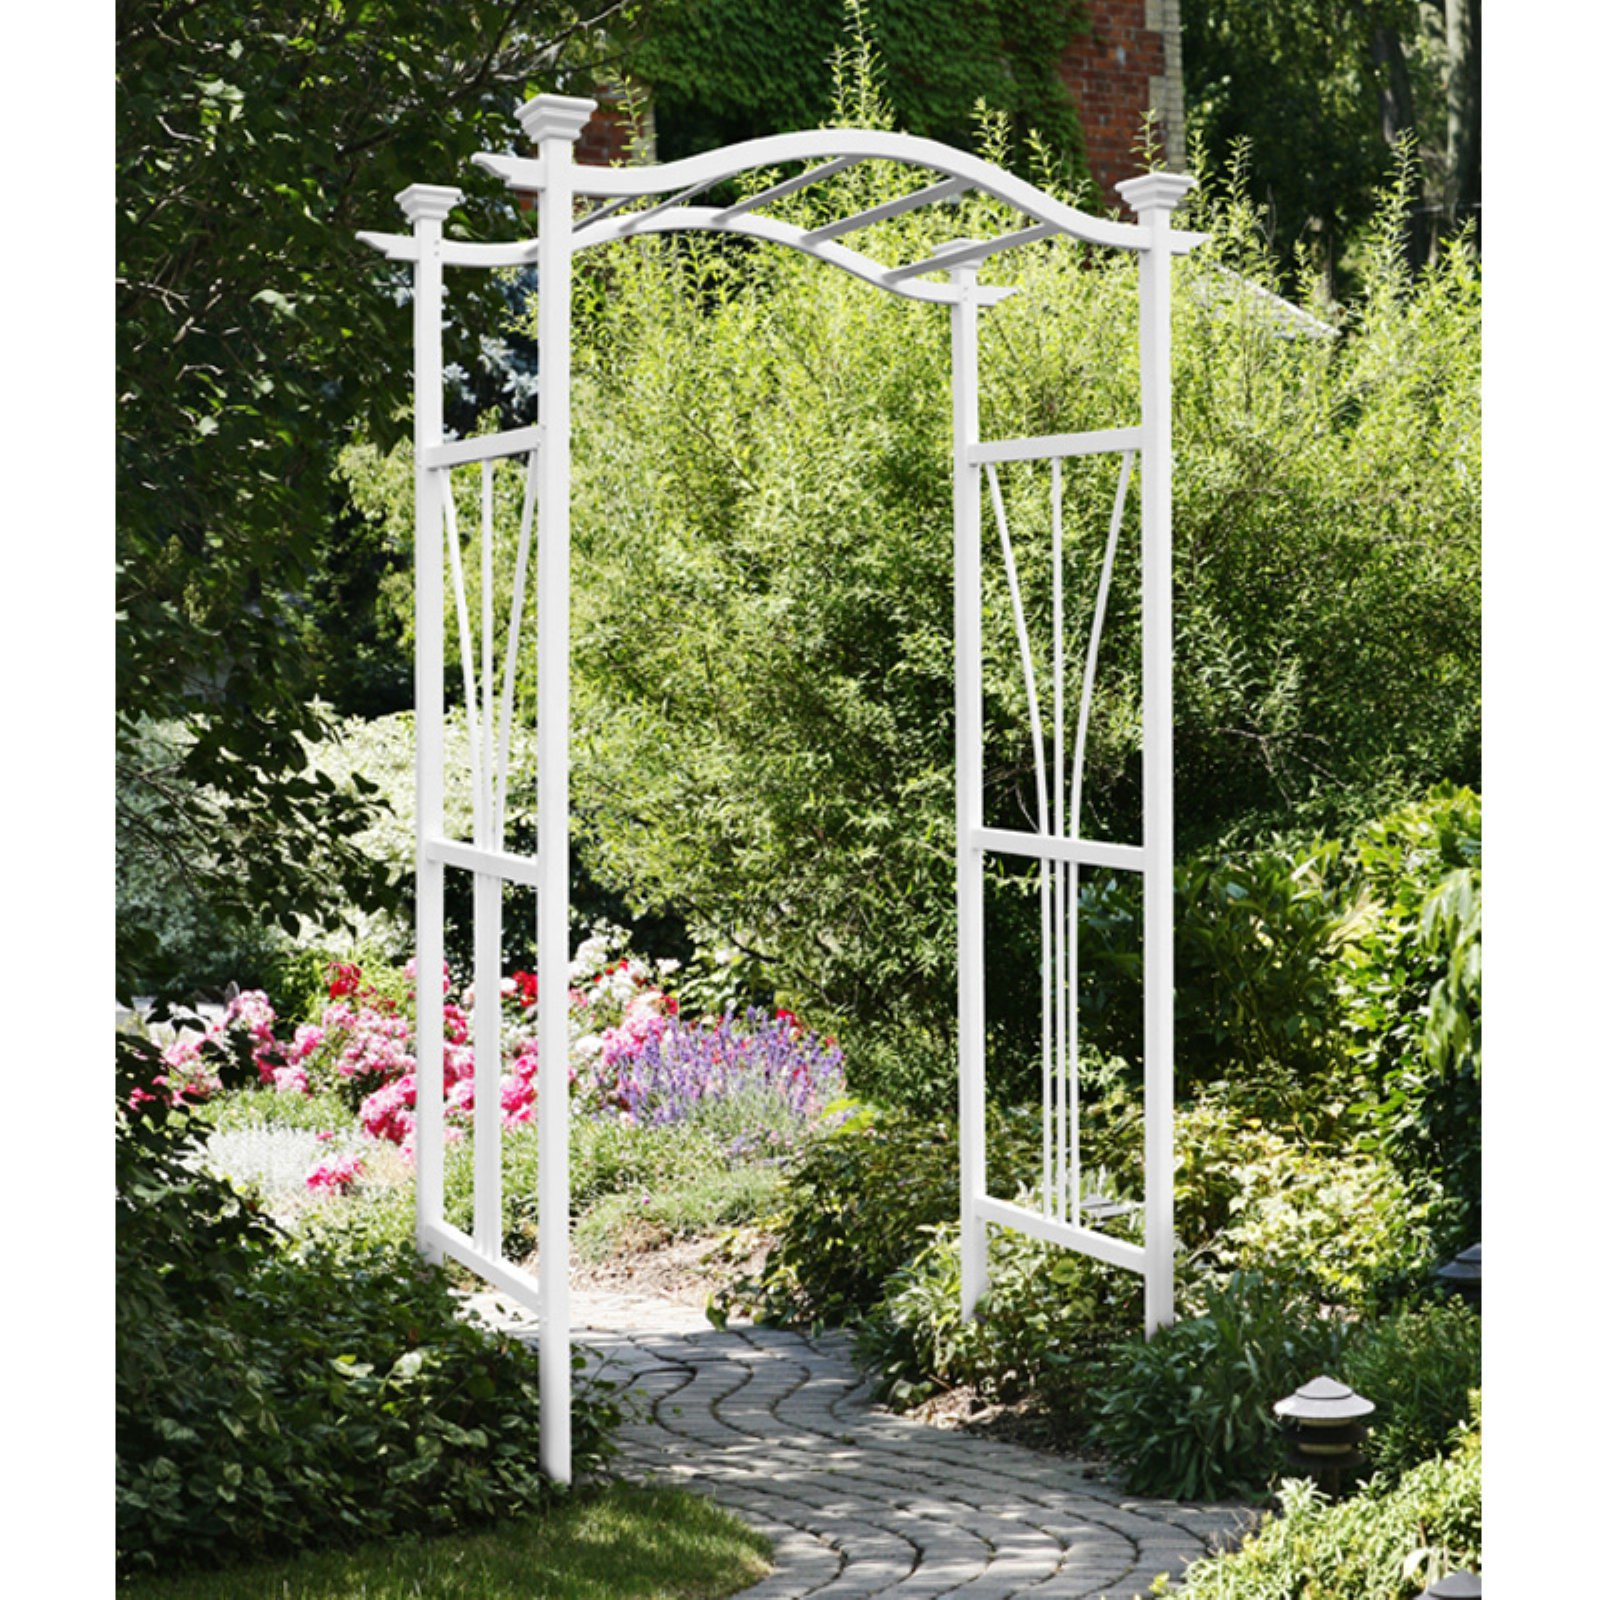 New England Arbors Eden London 7.25-ft. Vinyl Arch Arbor by New England Arbors